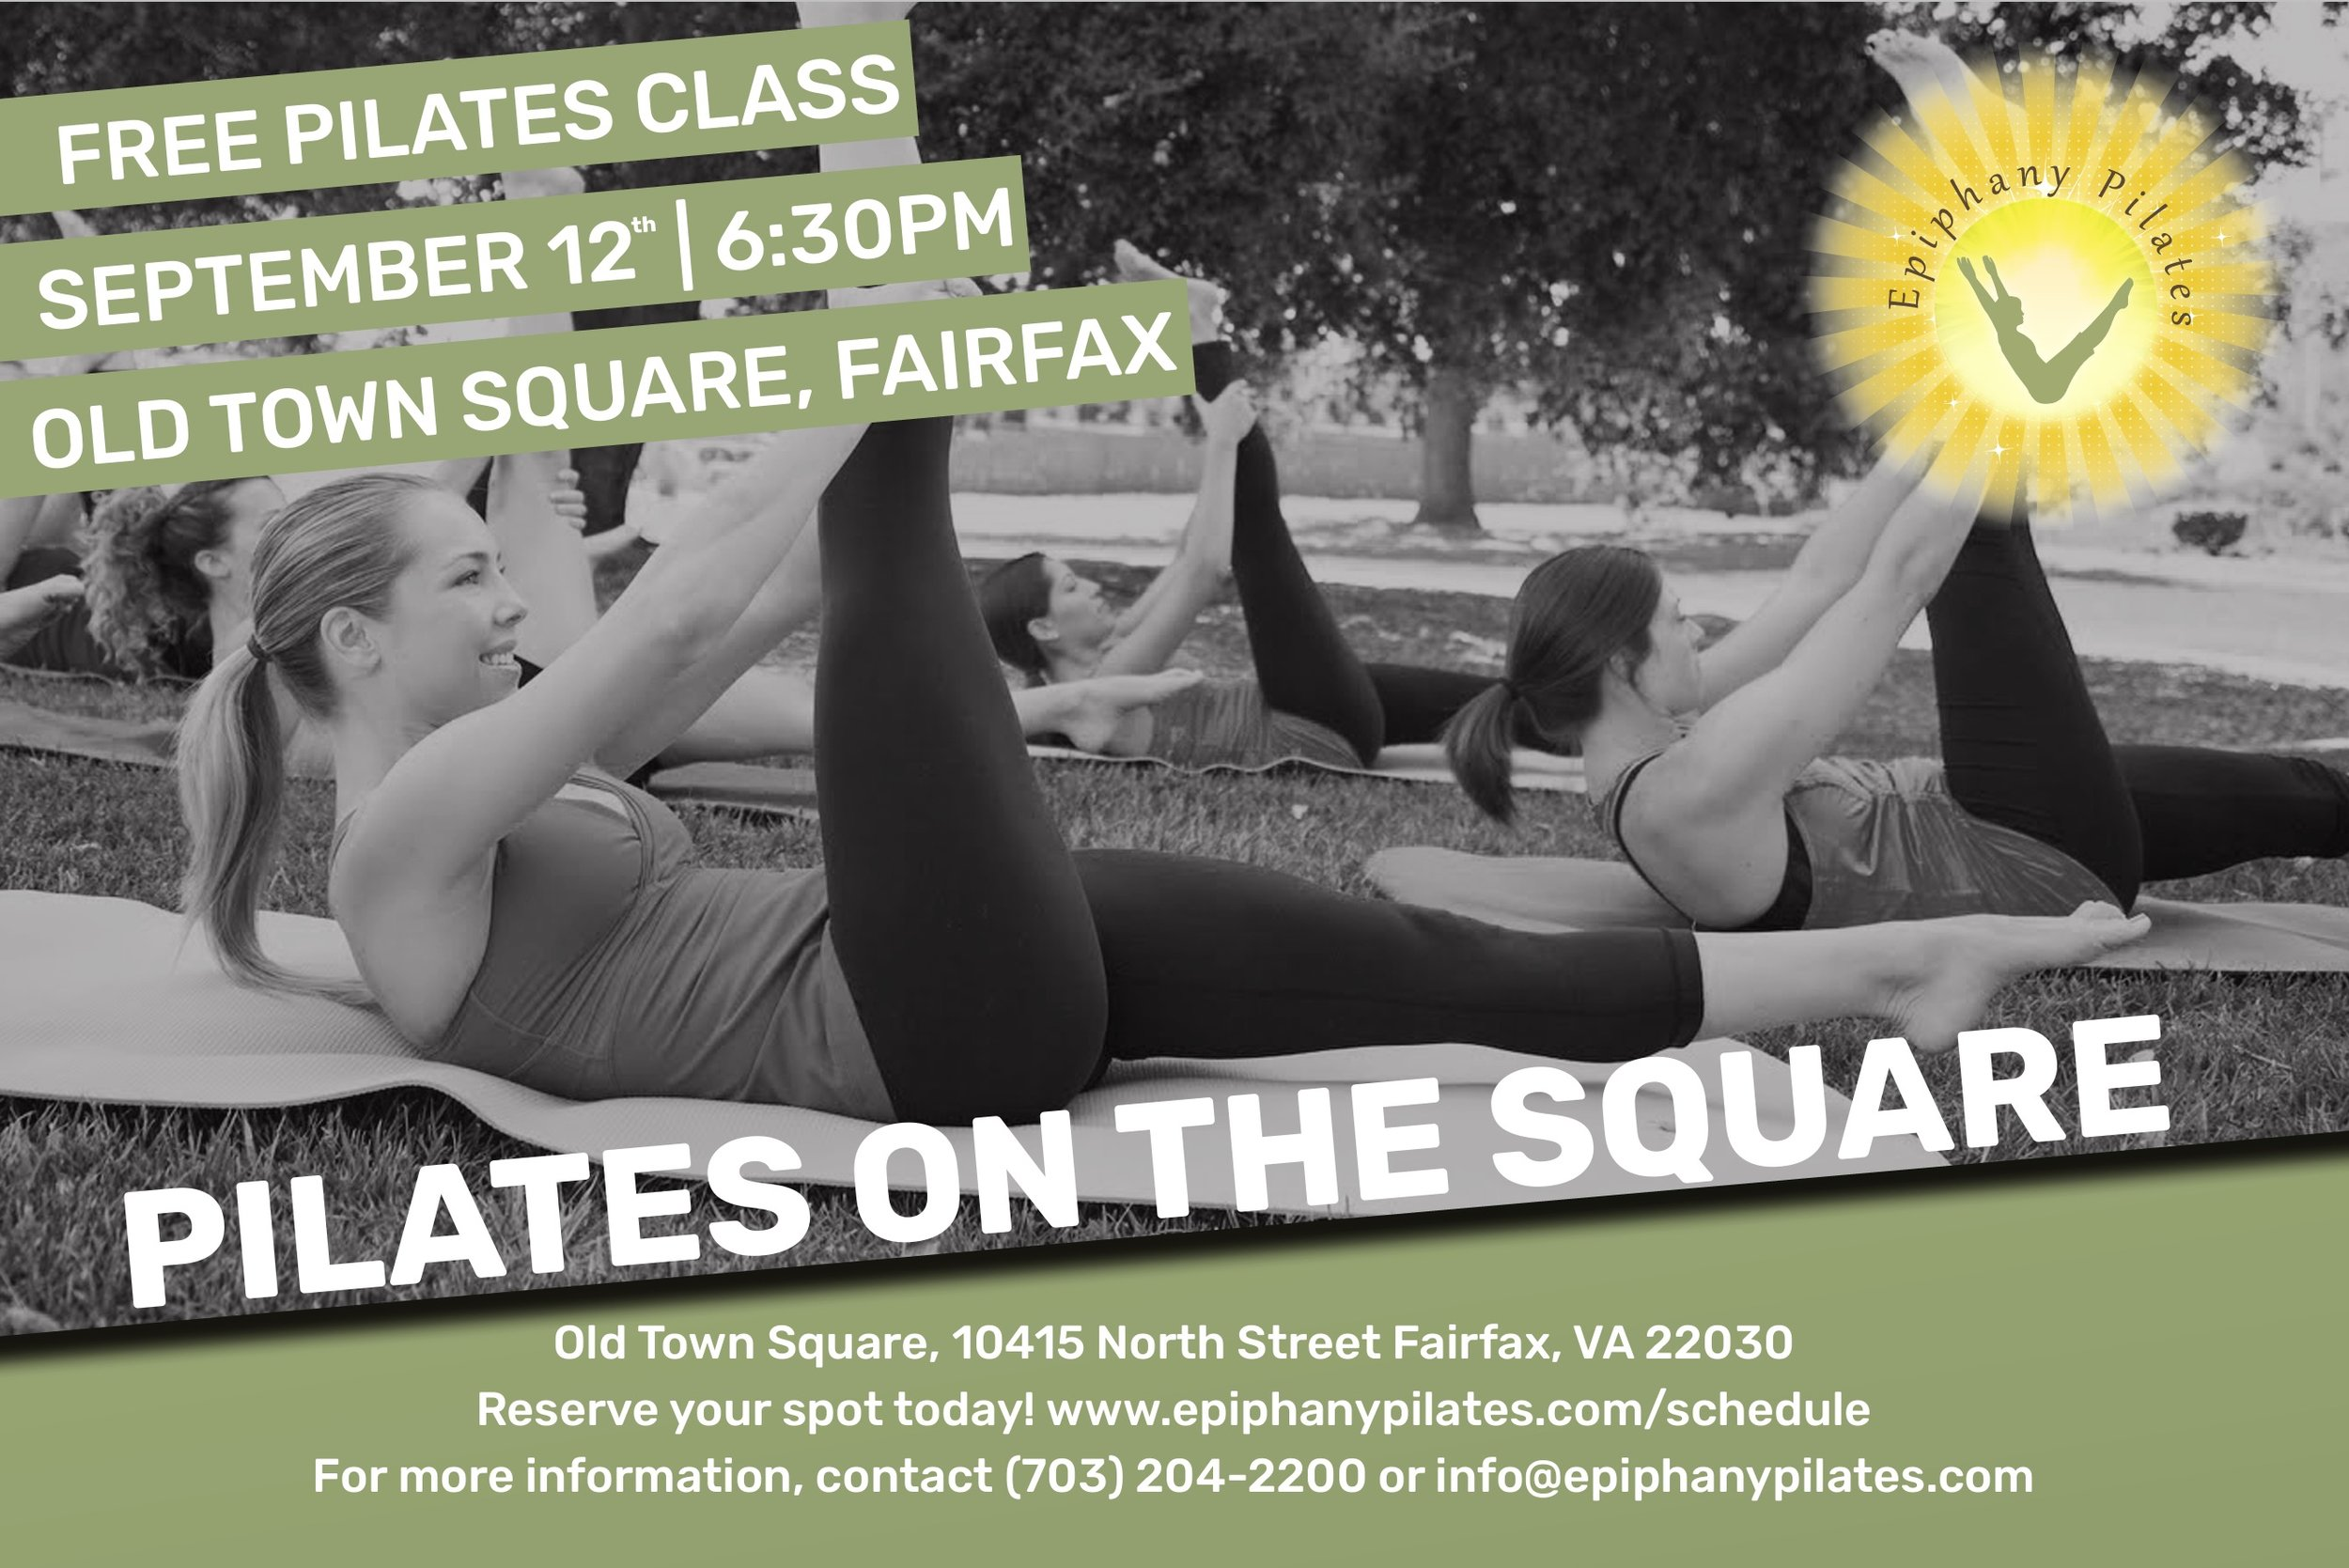 PilatesOnTheSquare_EpiphanyPilates_91217.jpg